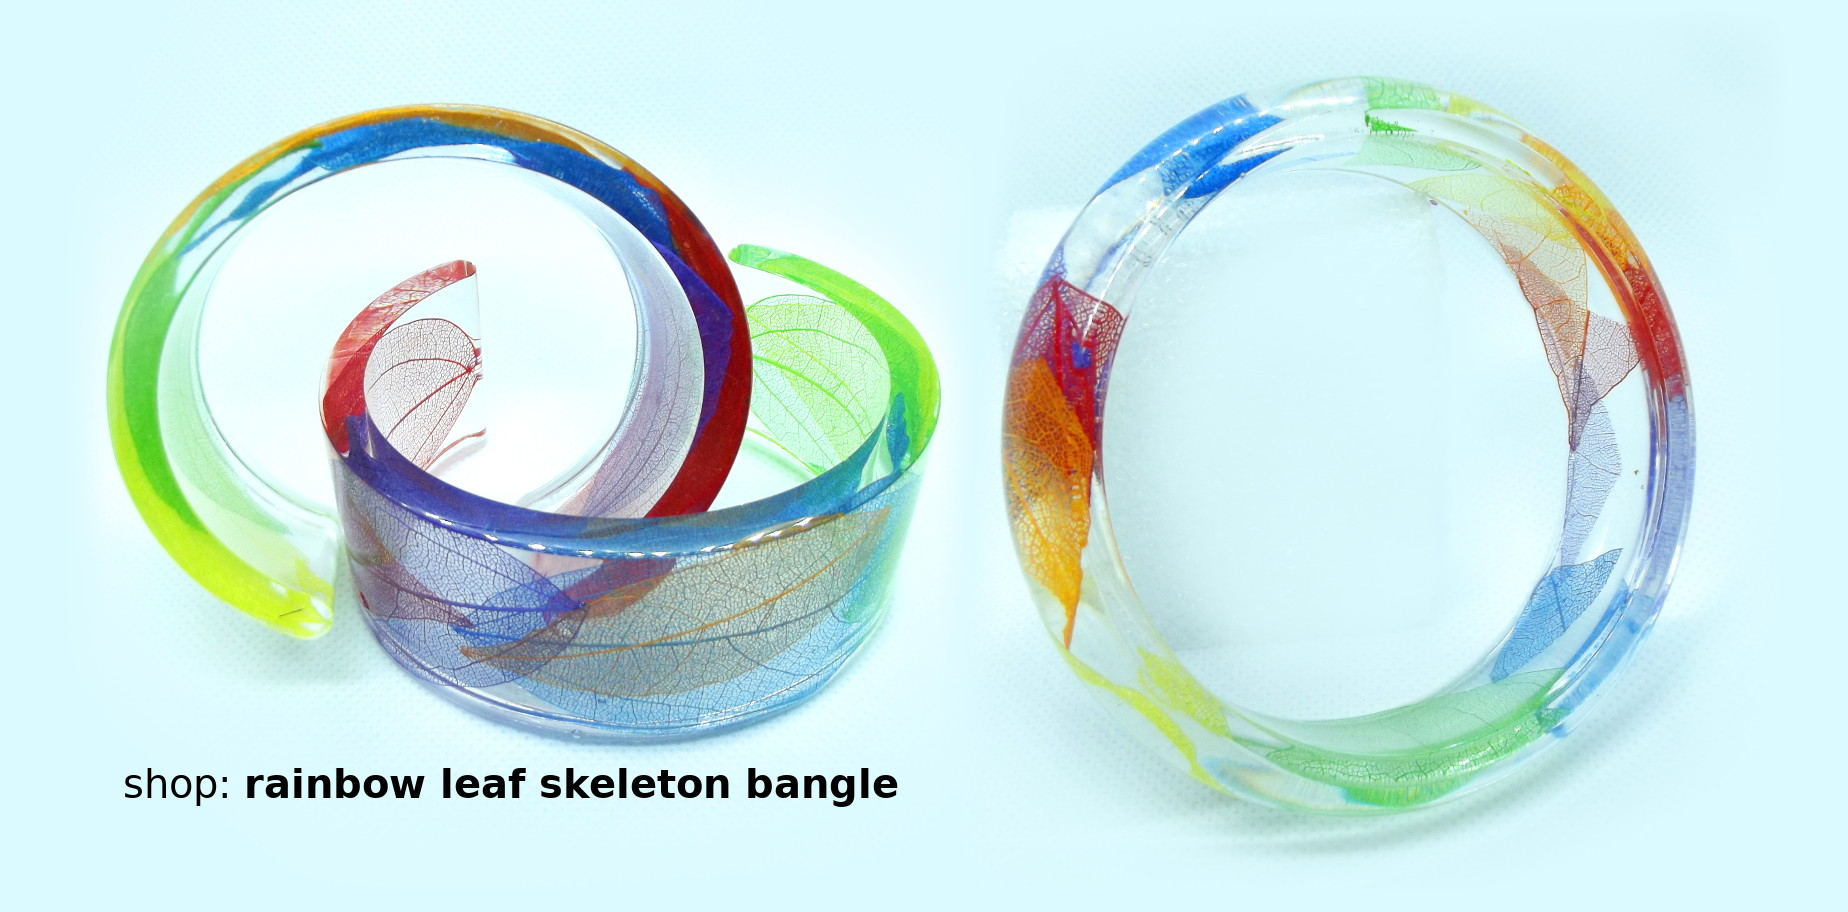 Rainbow leaf skeleton bangle